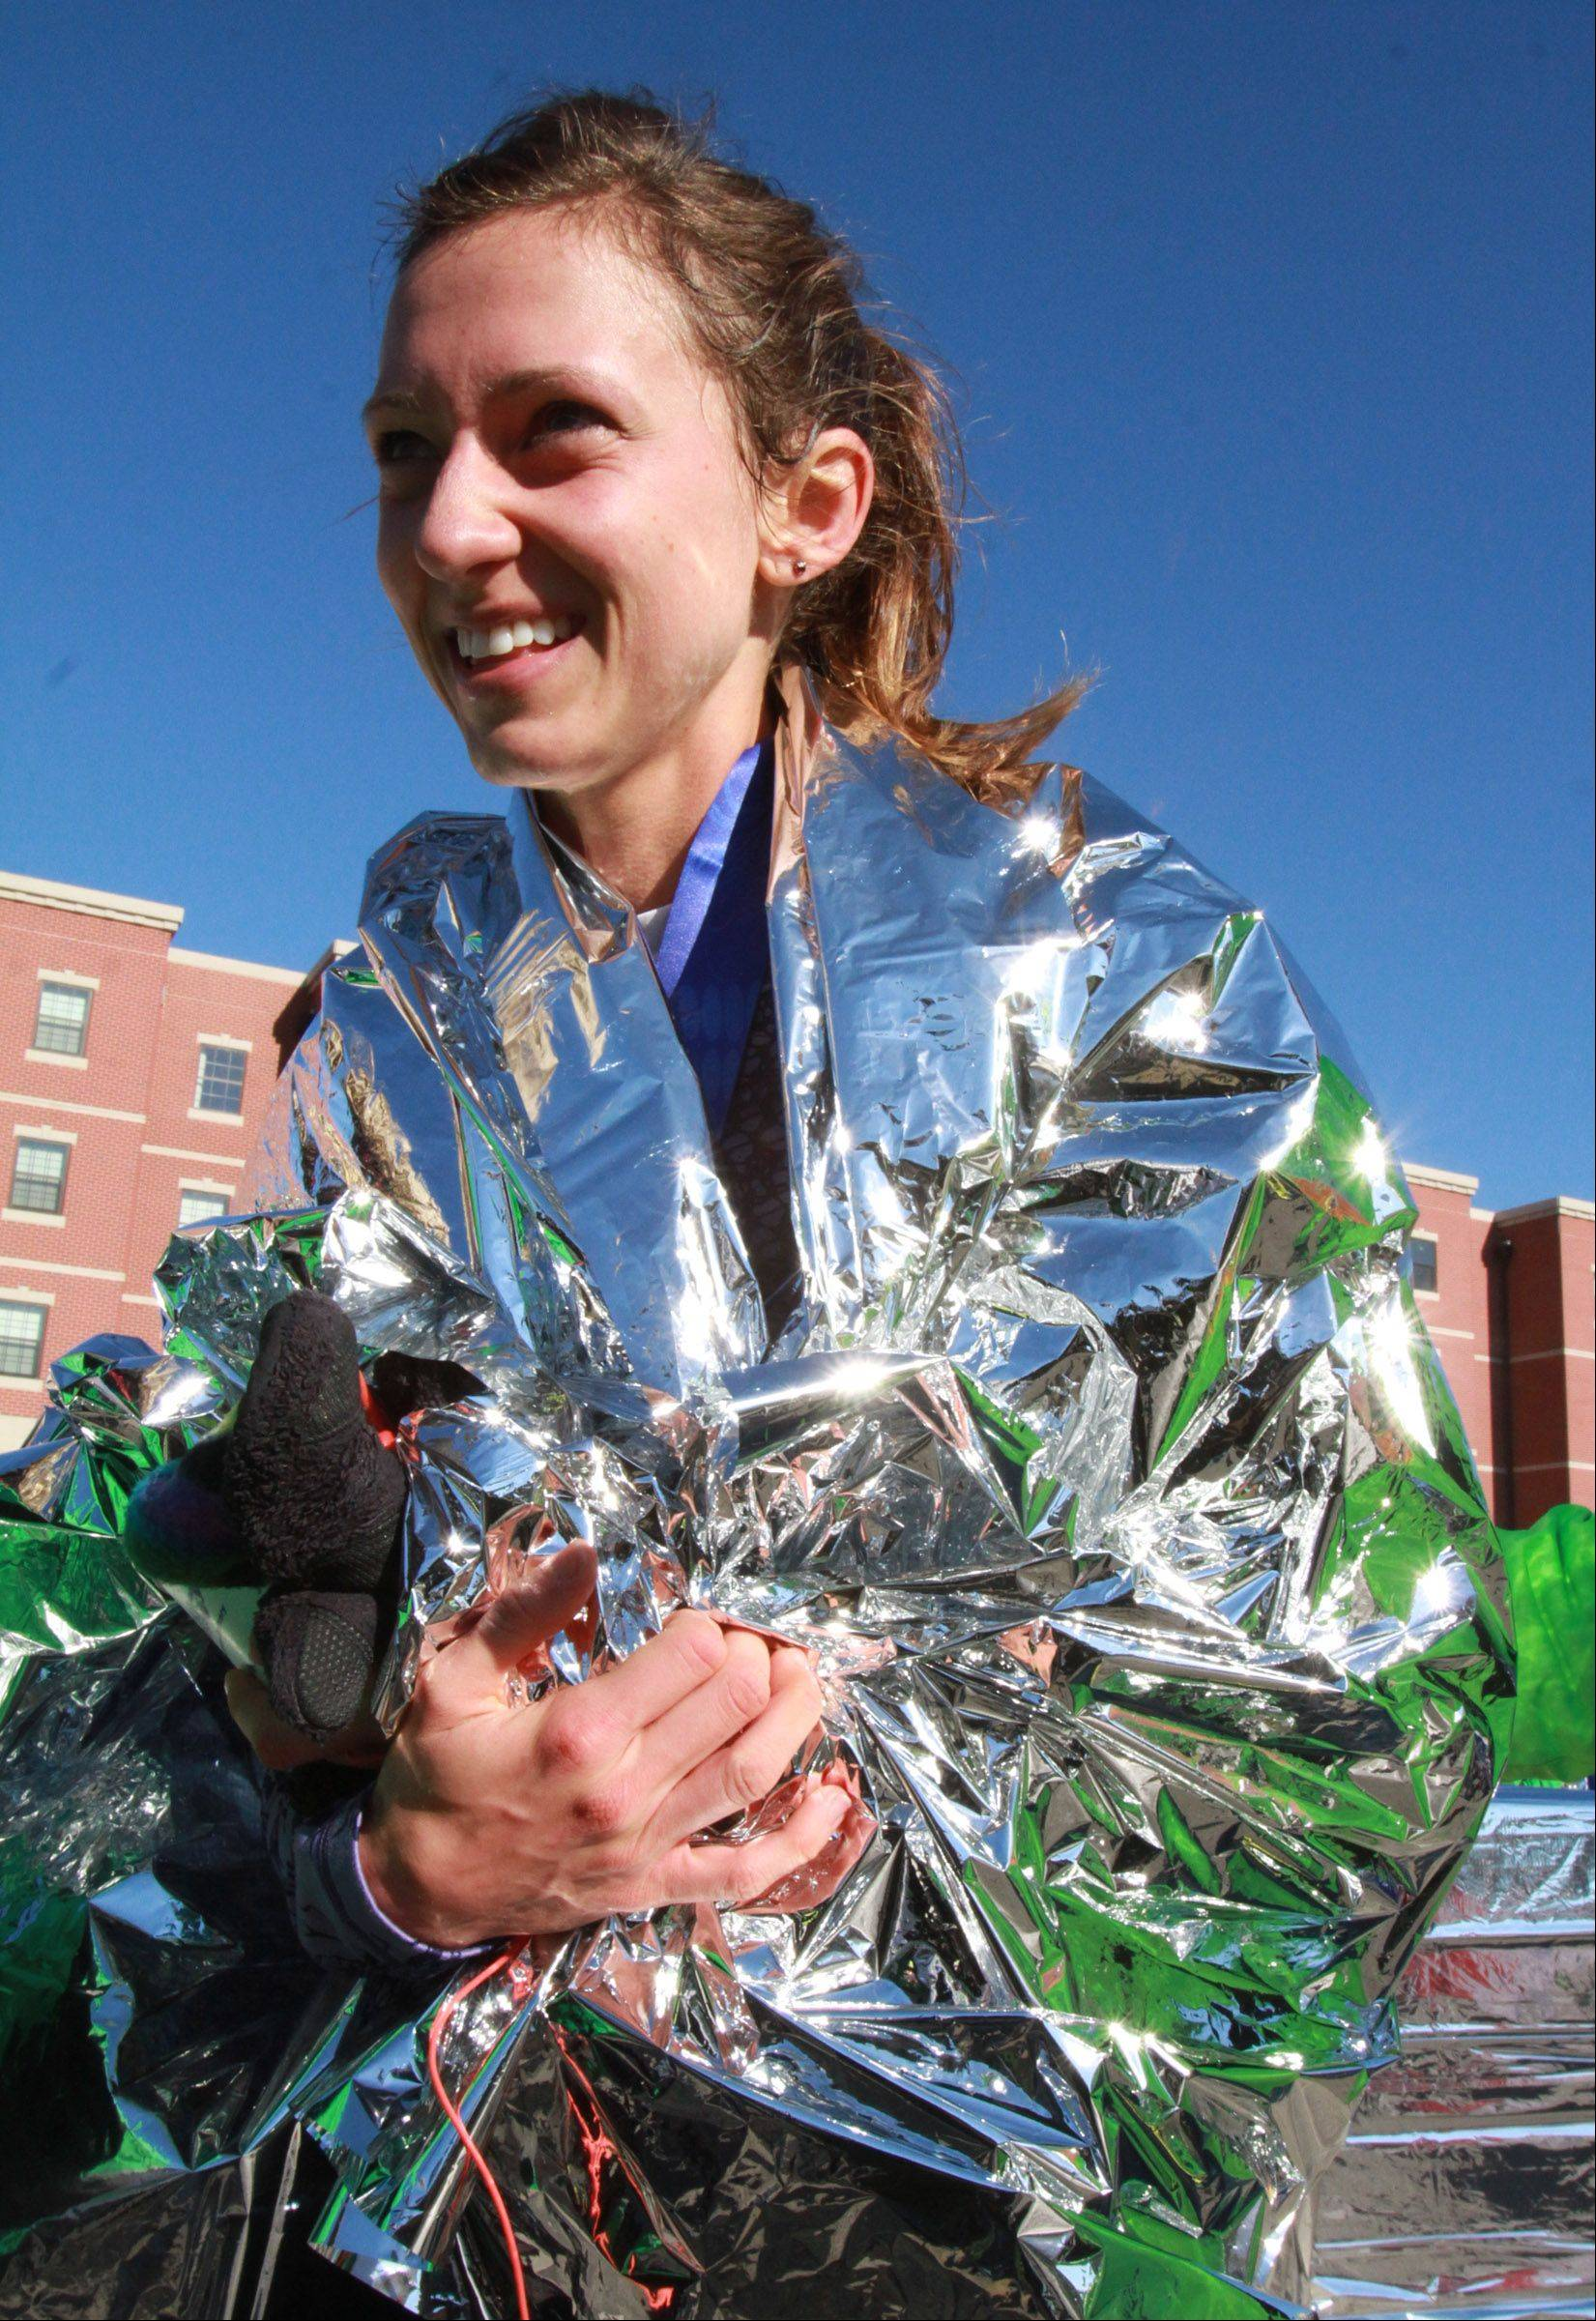 Amanda Mirochna of Naperville was the first women to cross the finish line in the Edward Hospital Naperville Marathon on Sunday, November 10, 2013.